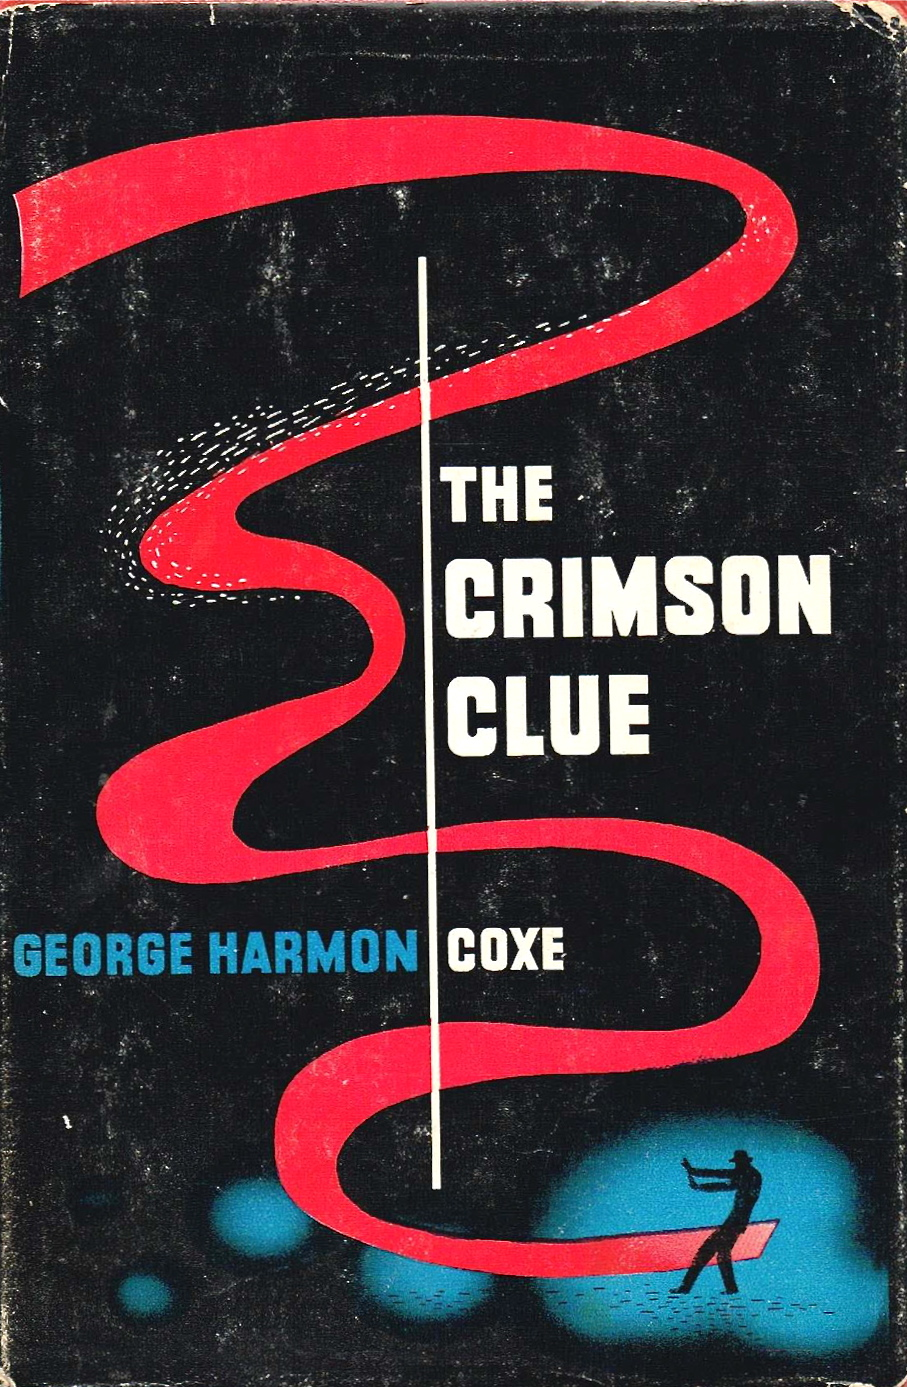 The Crimson Clue by George Harmon Coxe